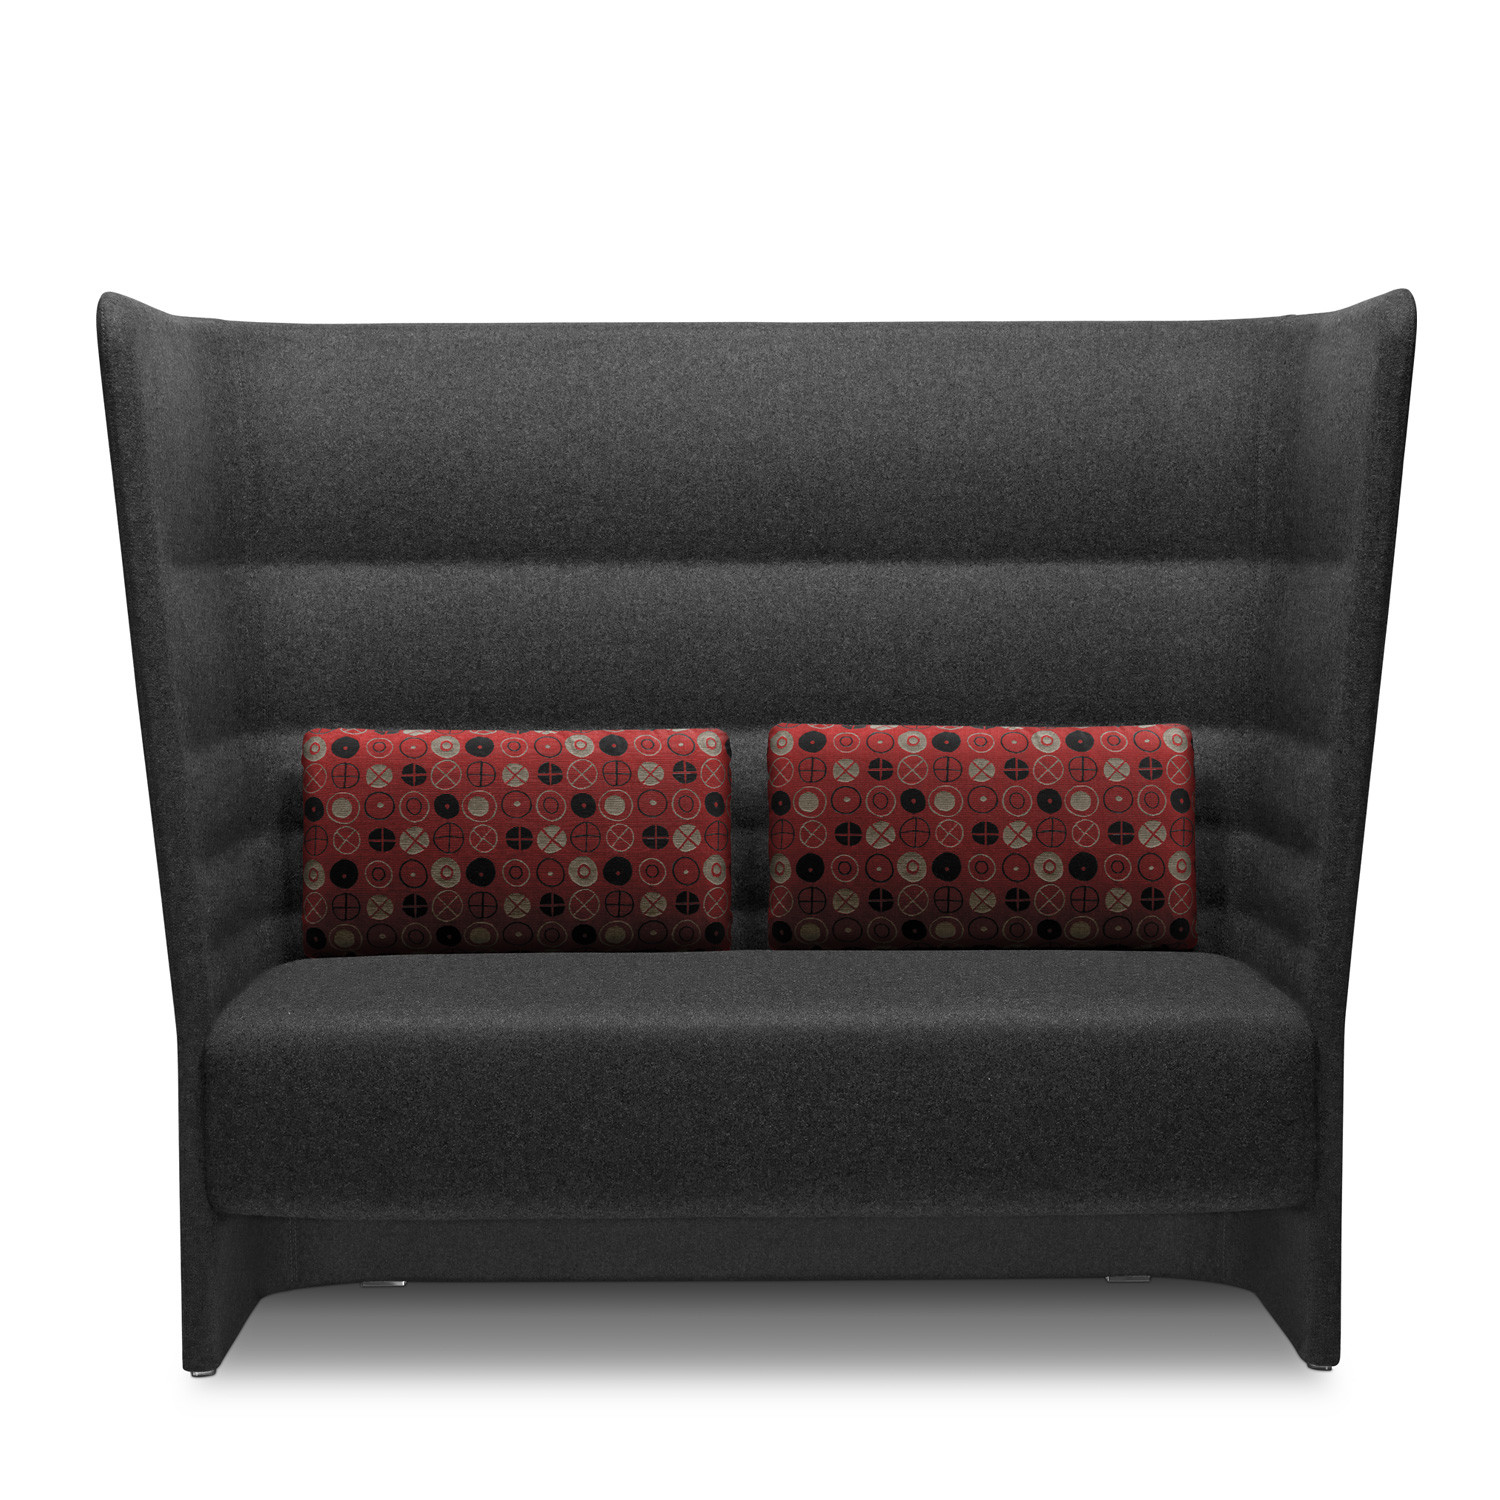 Cell 128 High Back Sofa